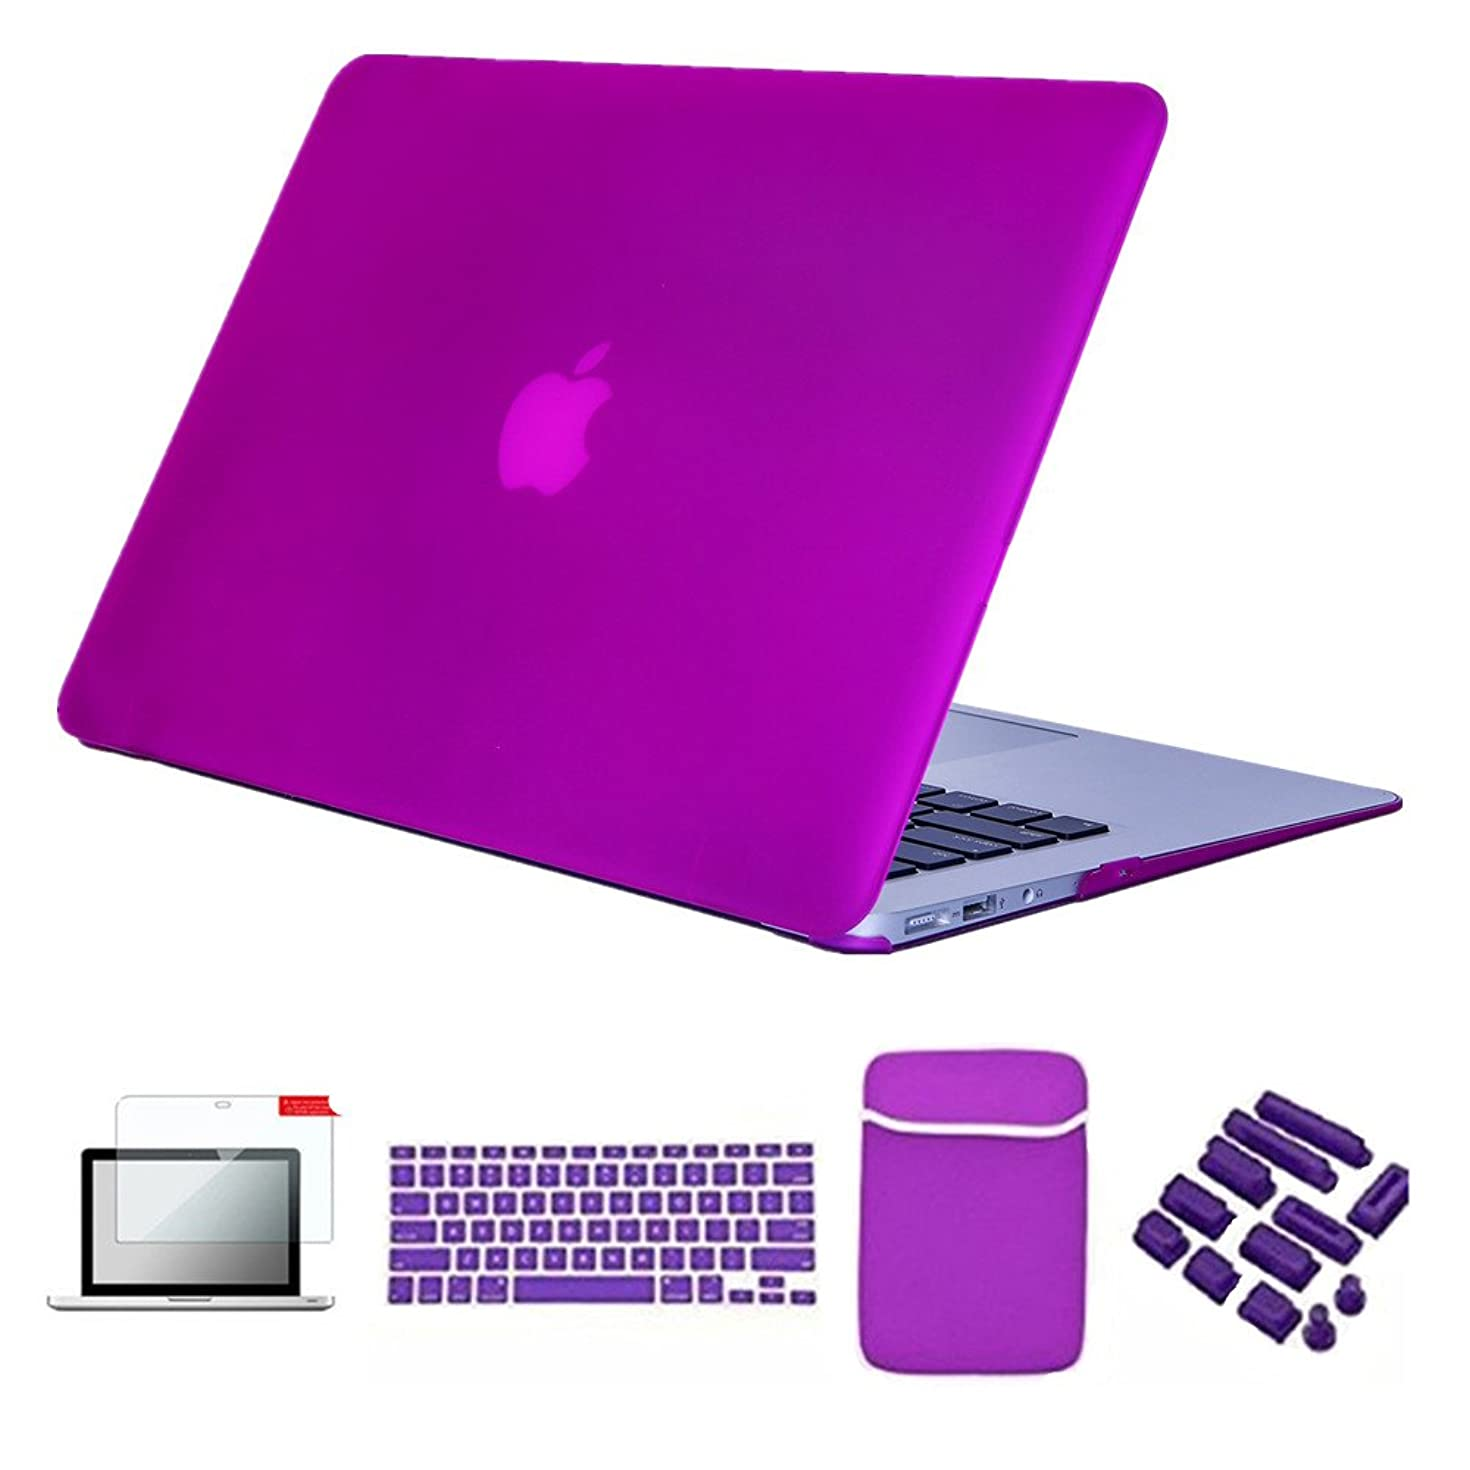 Se7enline MacBook Pro Case Bundle 5 in 1 Set Soft-Touch Plastic Hard Cover Cases for MacBook Pro 13 in A1278 Release 2010-2012 Soft Sleeve Bag, Keyboard Cover,Screen Protector, Dust Plug, Deep Purple